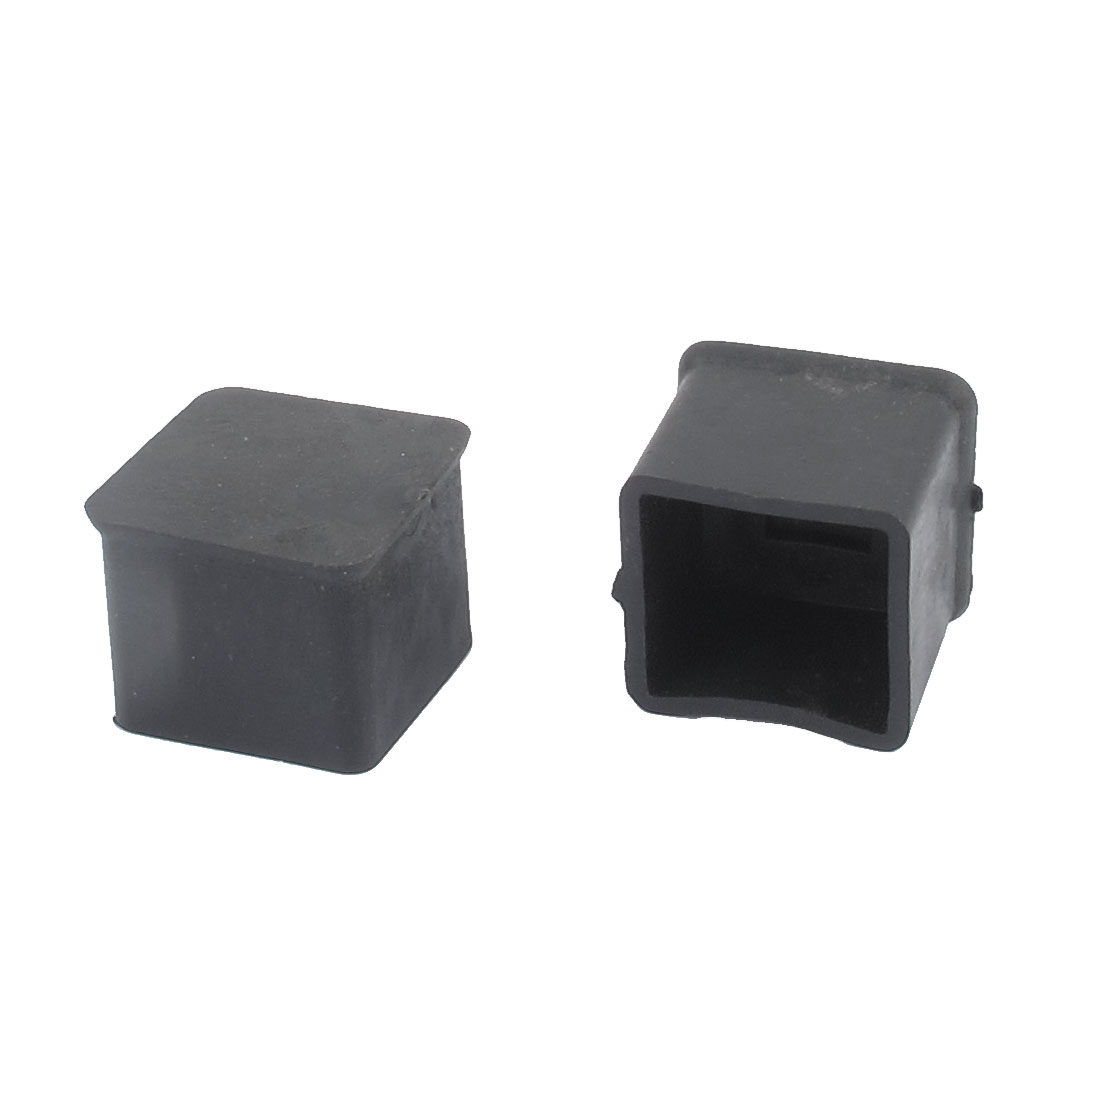 2pcs Rubber Square Shape Furniture Table Chair Foot Leg Tip Pad Cover Floor Protector